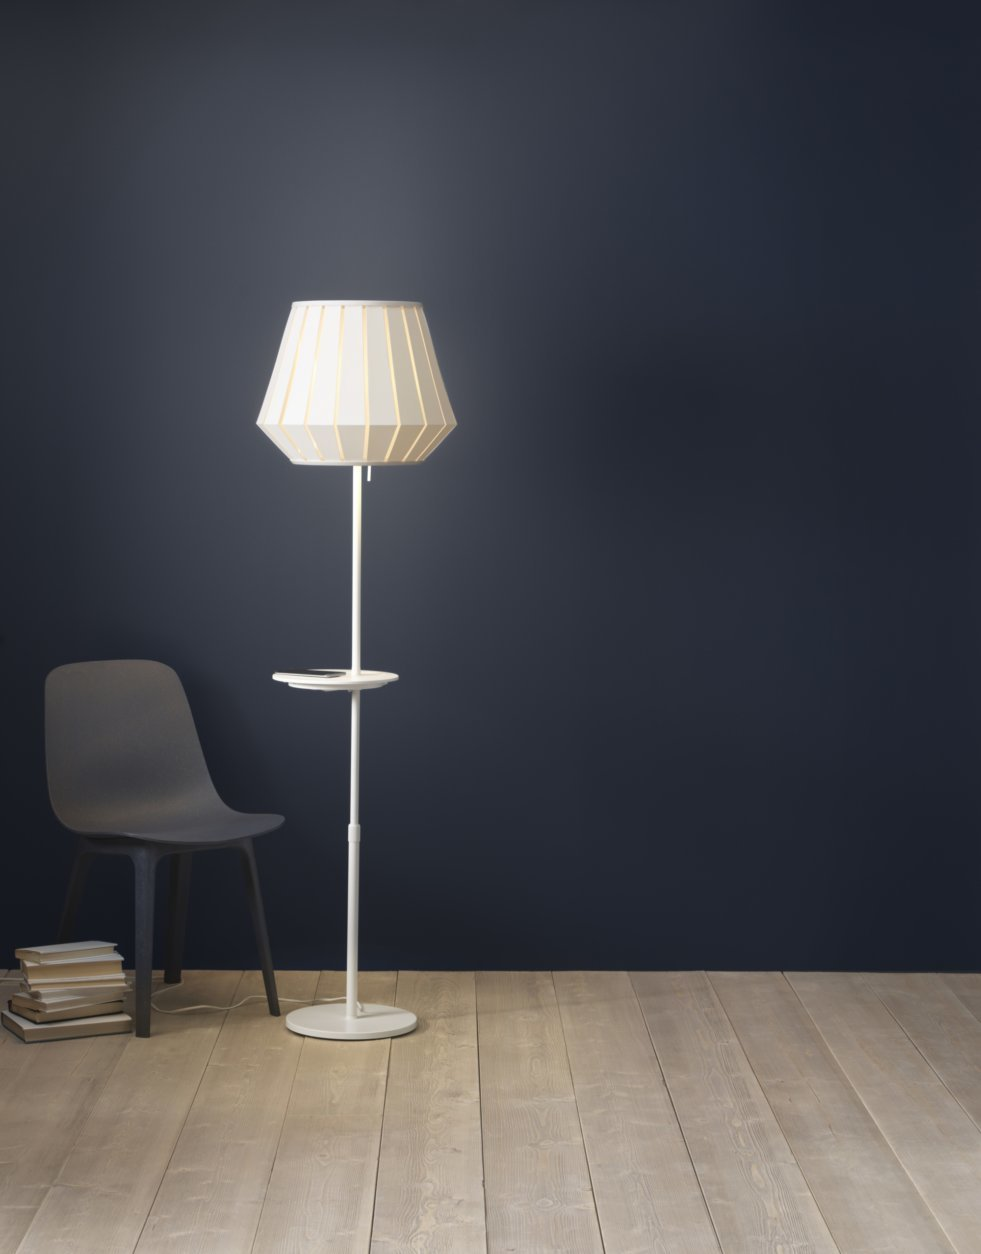 This undated photo provided by Inter IKEA Systems B.V. 2018 shows the VARV floor lamp, which allows you to charge 2 devices at once with a USB port built into the lamp, and a built in charger on the table for wireless charging. (Inter IKEA Systems B.V. 2018 via AP)